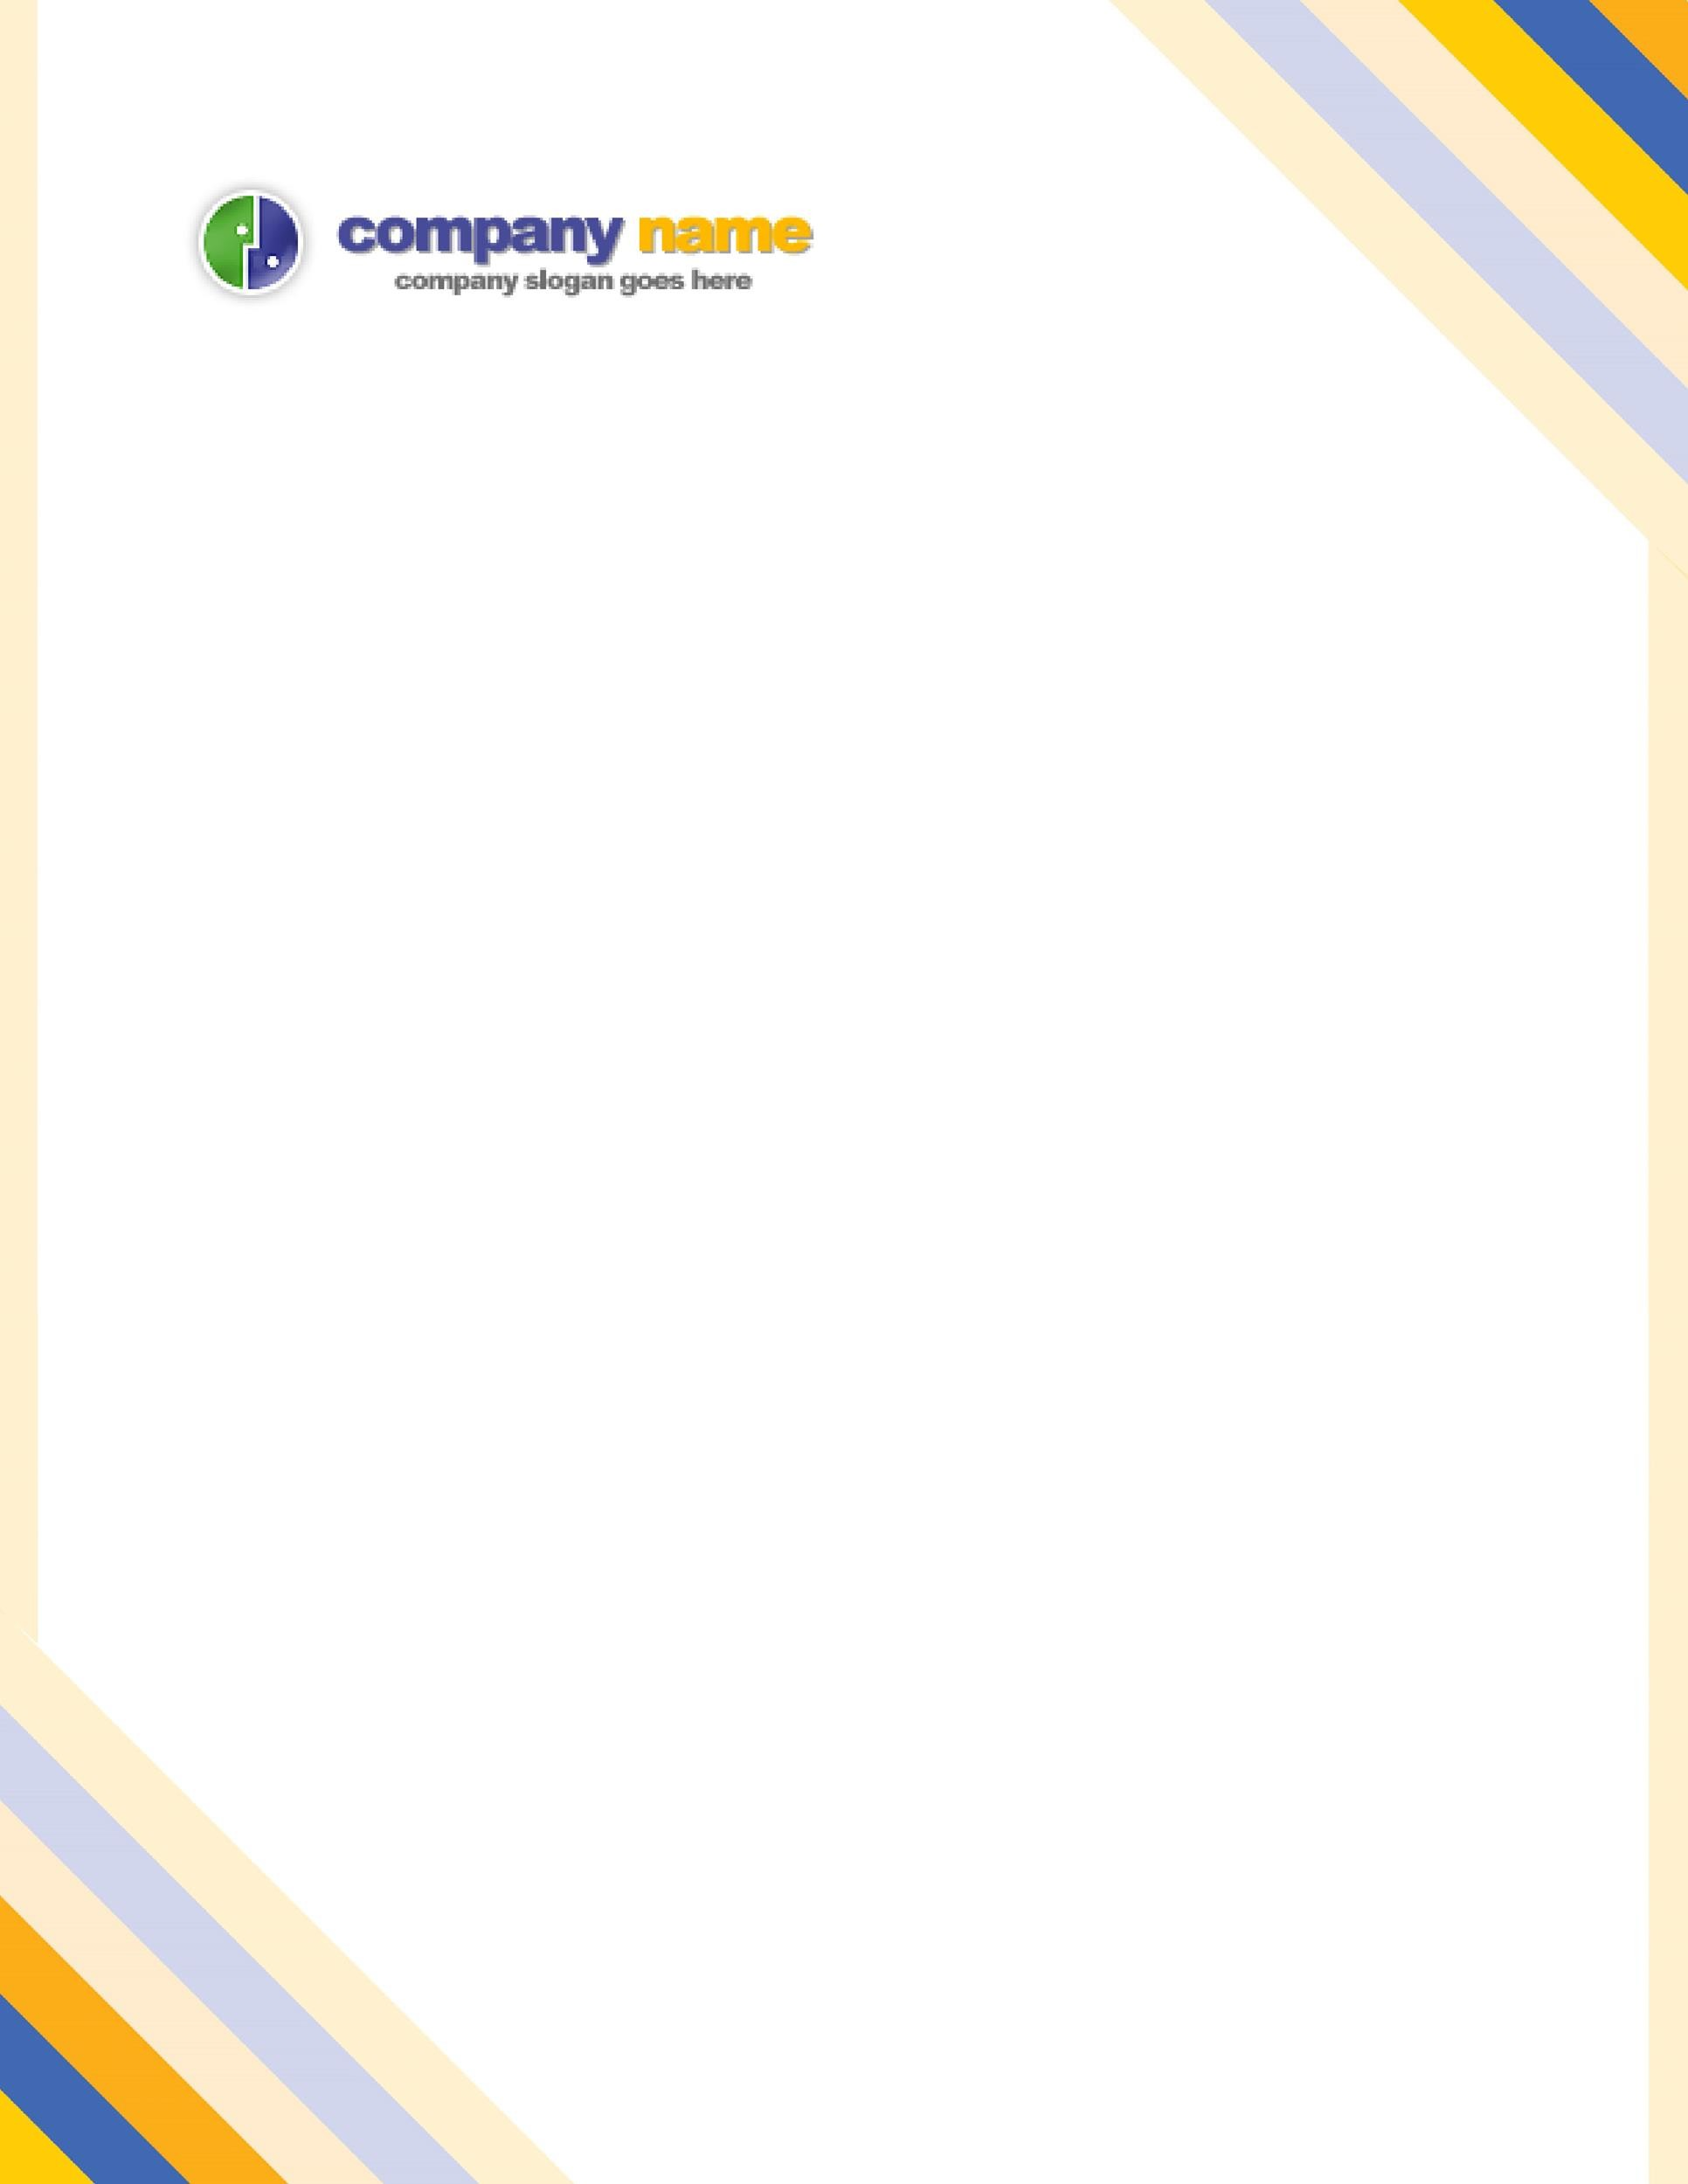 examples template lab : Limited Company Letterhead Template Uk